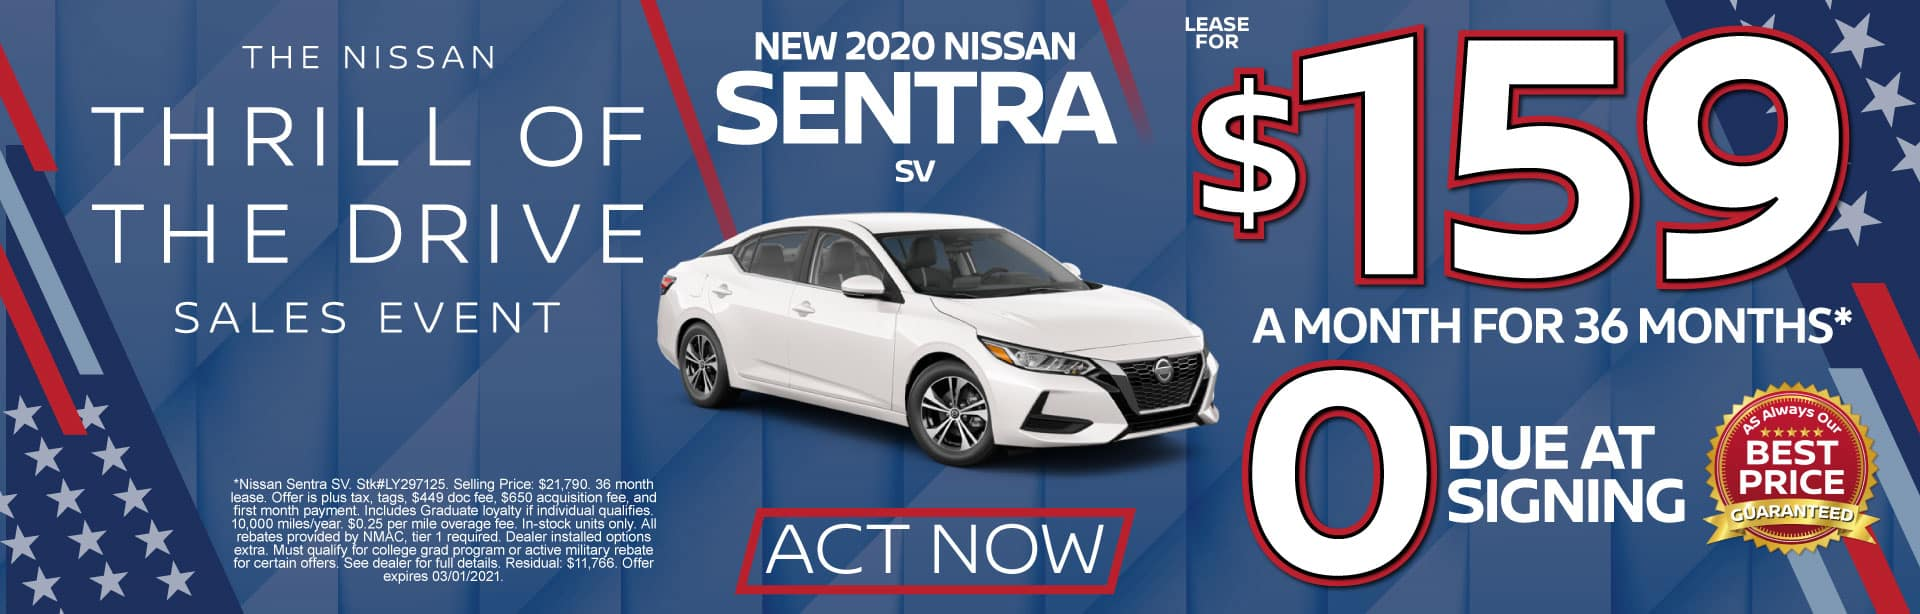 2020 Nissan Sentra $159 a month for 36 months* ZERO due at signing. Act Now.